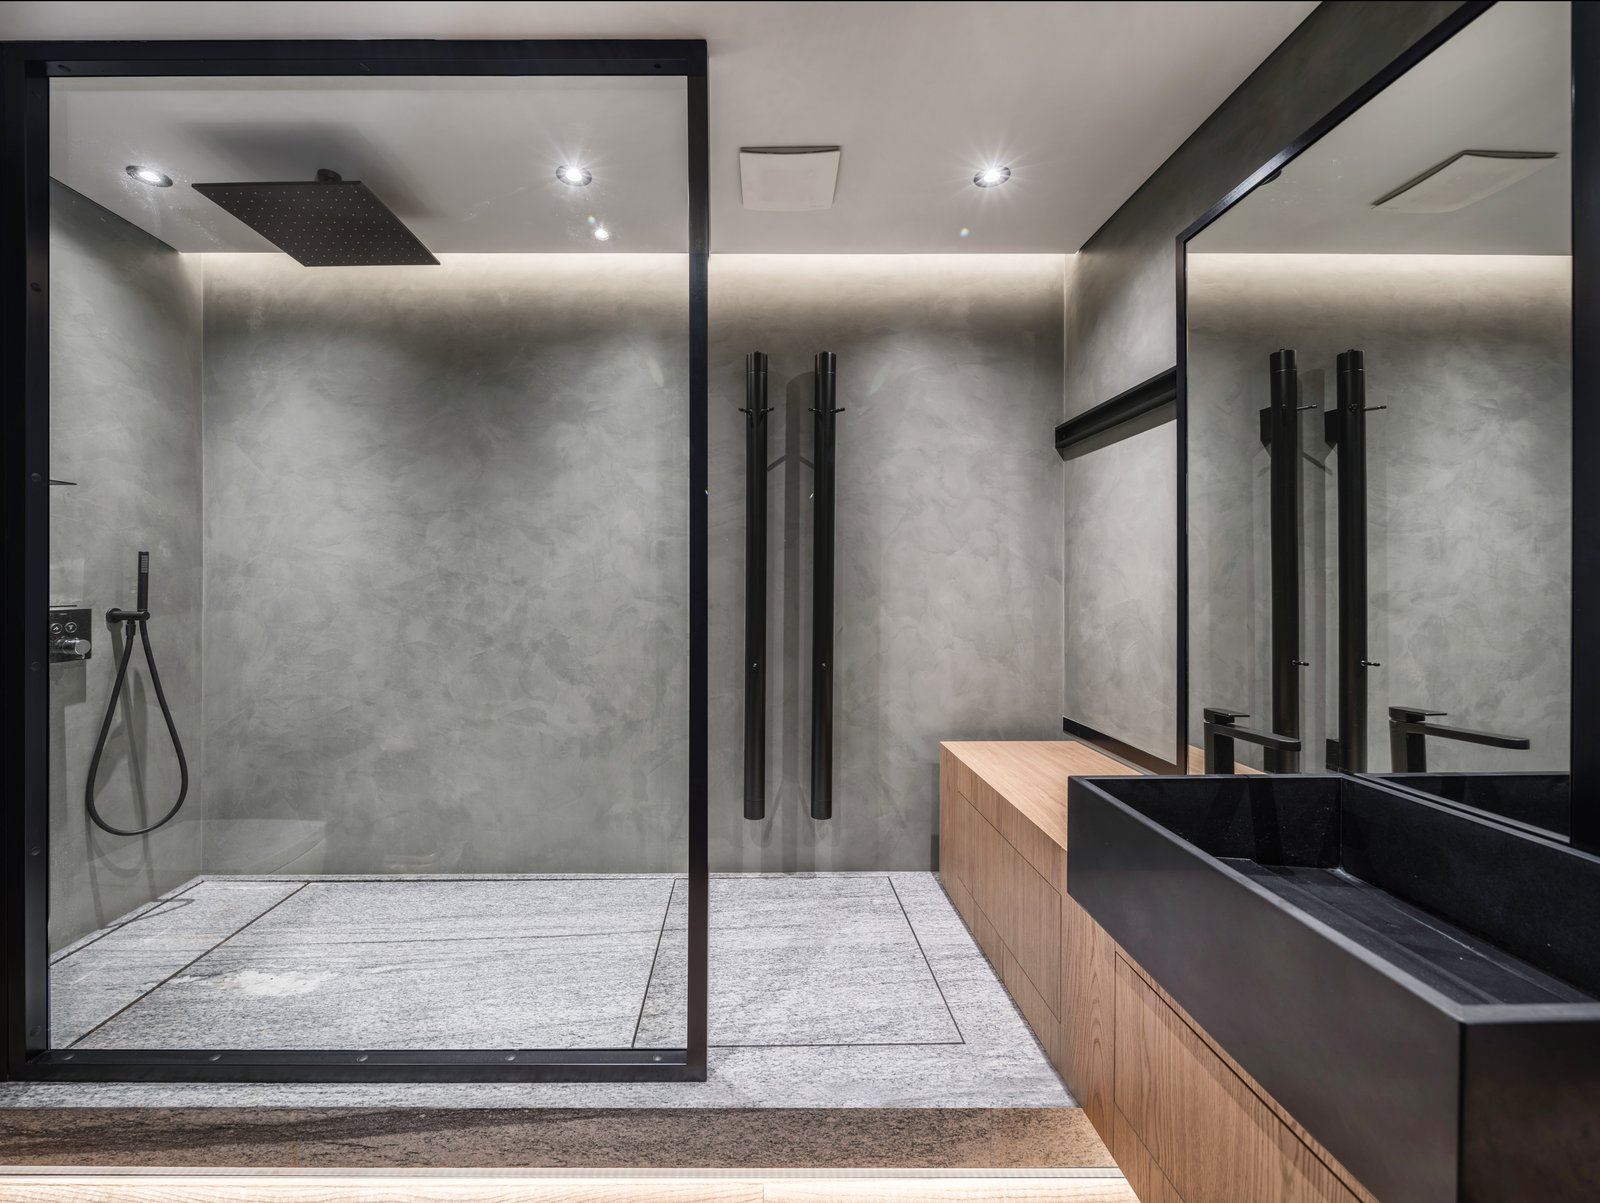 Bath, Vessel, Recessed, Wood, Slate, Open, Enclosed, Full, and Concrete The glass dividers in the bathroom are hand-crafted by Ukrainian craftsmen.  Best Bath Wood Recessed Full Open Photos from A Monochromatic Palette Unifies Old and New in This Ukrainian Bachelor Pad